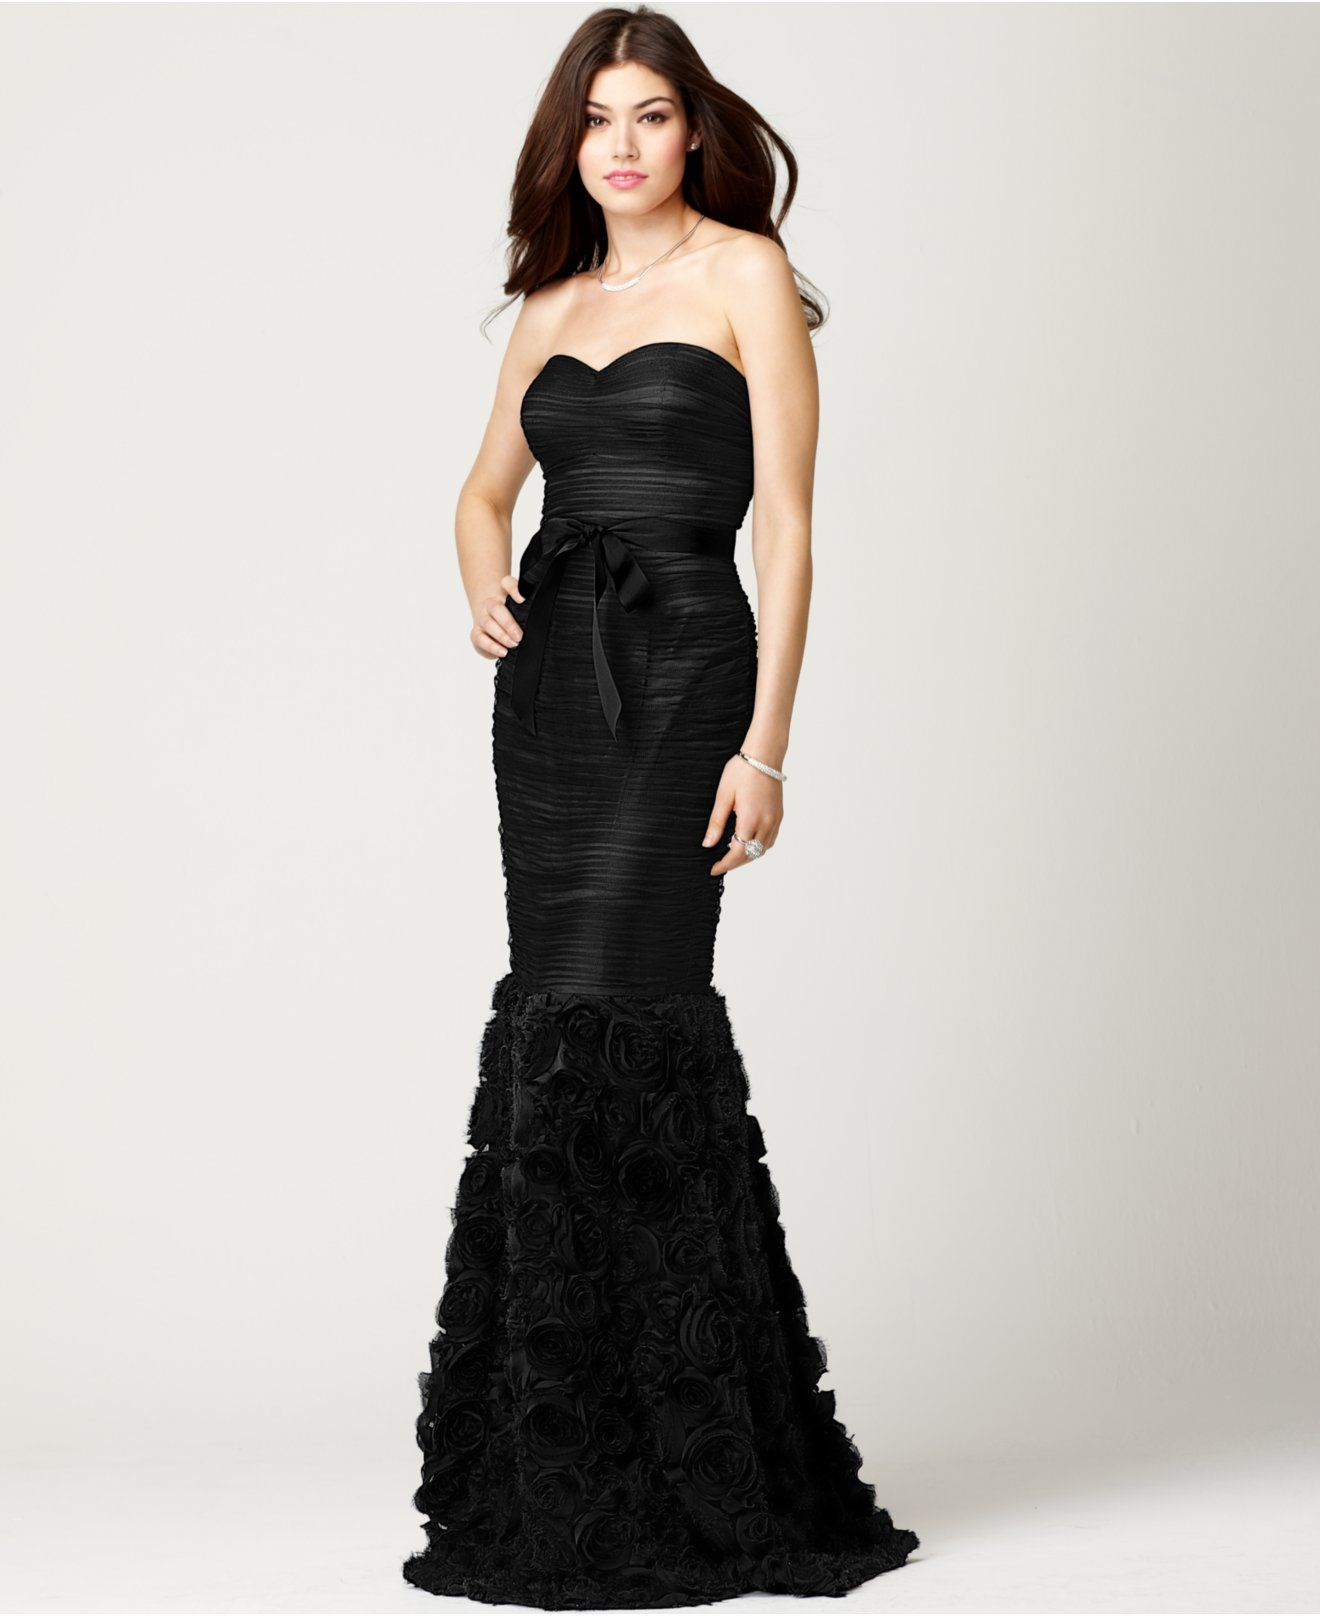 Js collections strapless belted mermaid gown dresses women